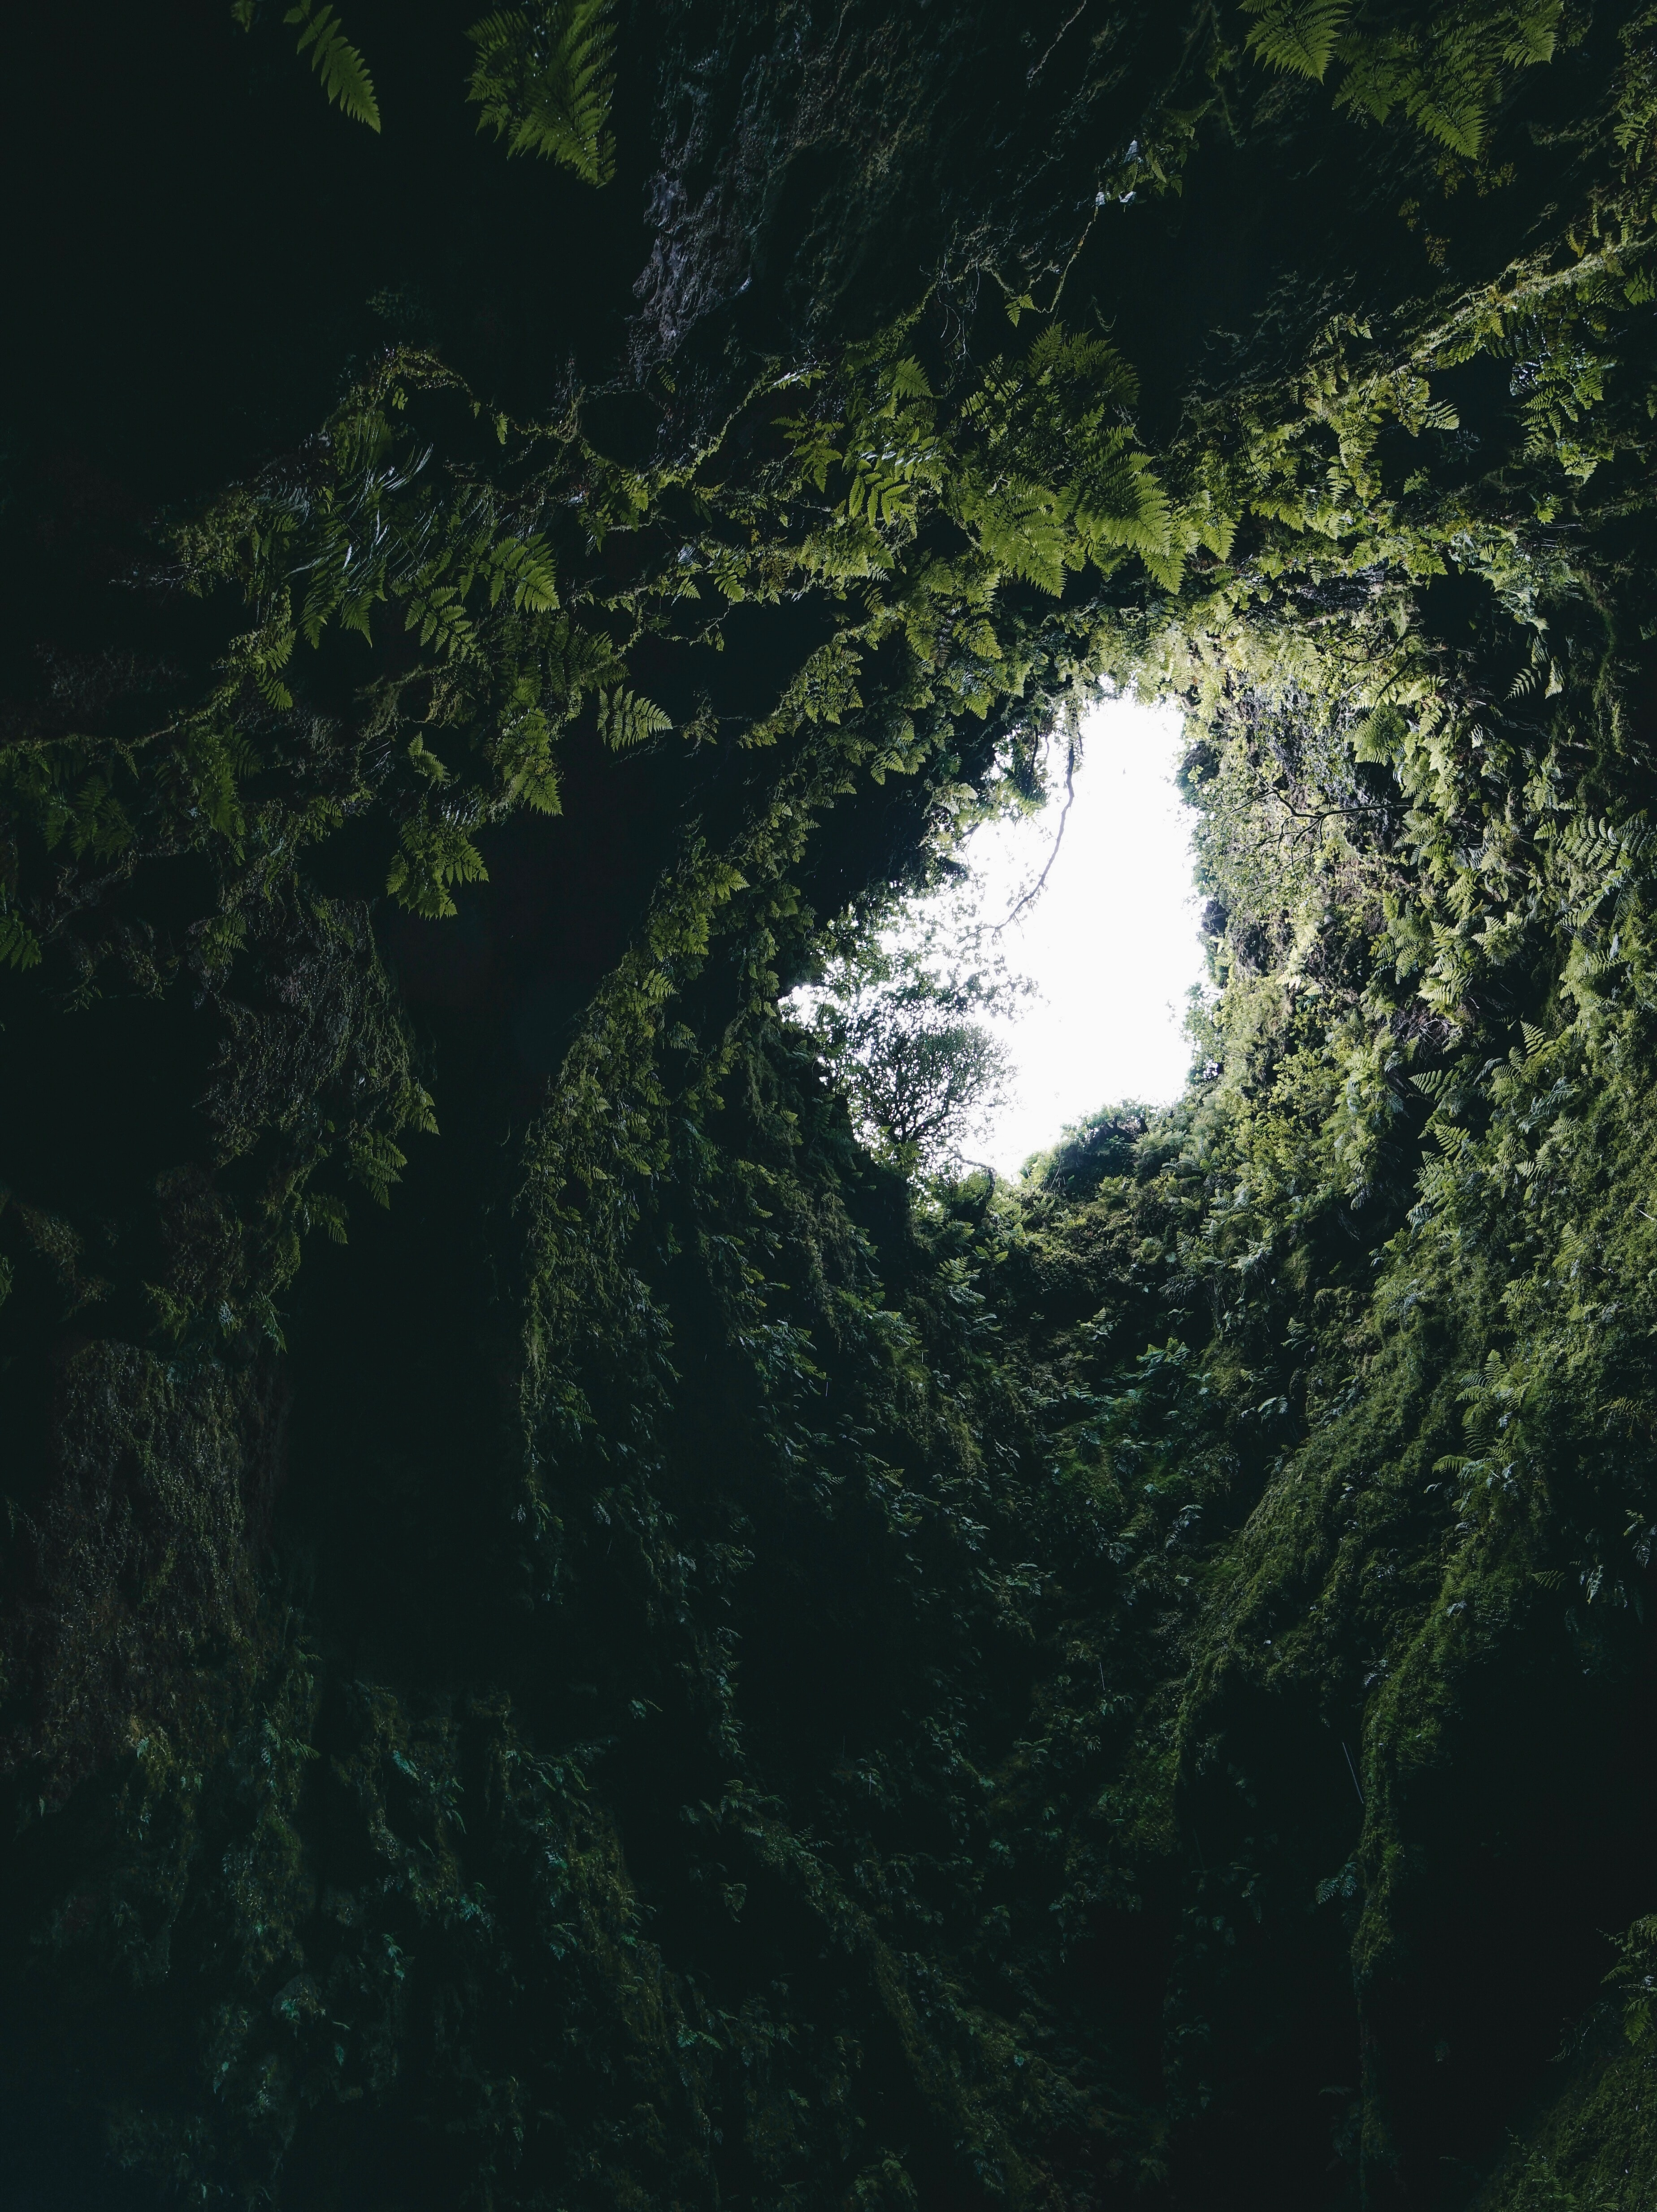 104416 download wallpaper Plants, Nature, Dark, Fern, Moss, Cave screensavers and pictures for free